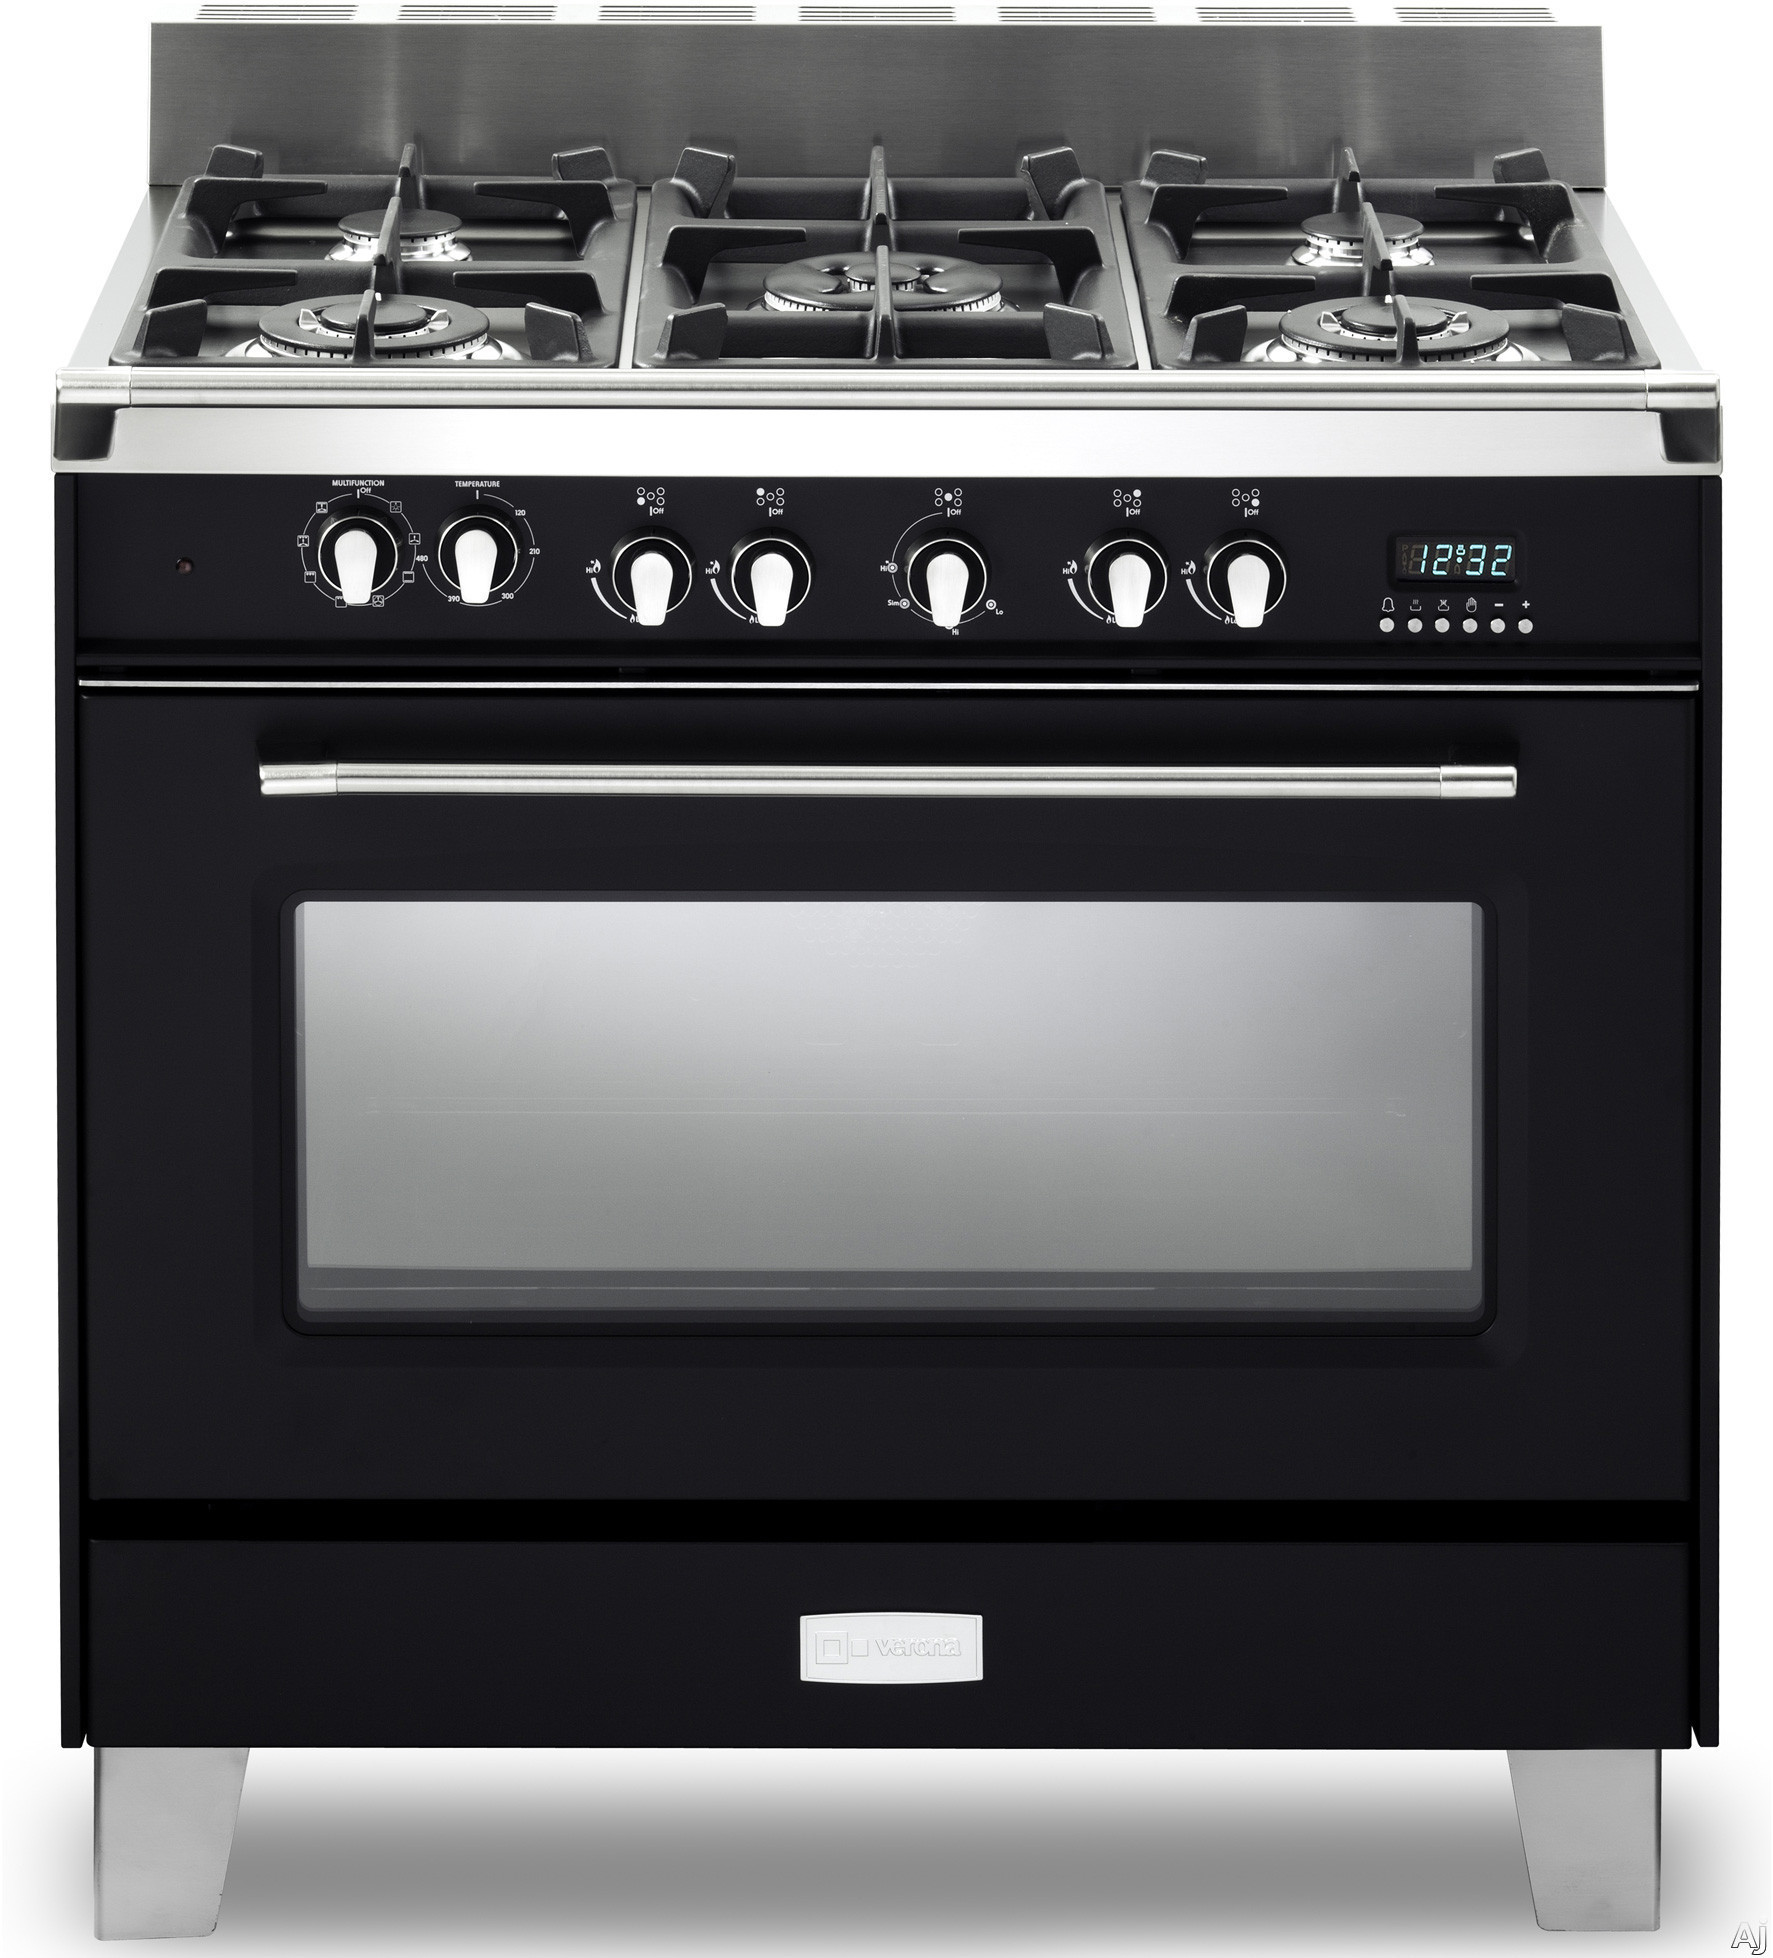 Verona Classic Series VCLFSGE365E 36 Inch Pro Style Dual Fuel Range with 5 Sealed Burners 40 cu ft European Convection Oven Manual Clean Digital Clock Timer Glide Rack and Storage Drawer Matte Black